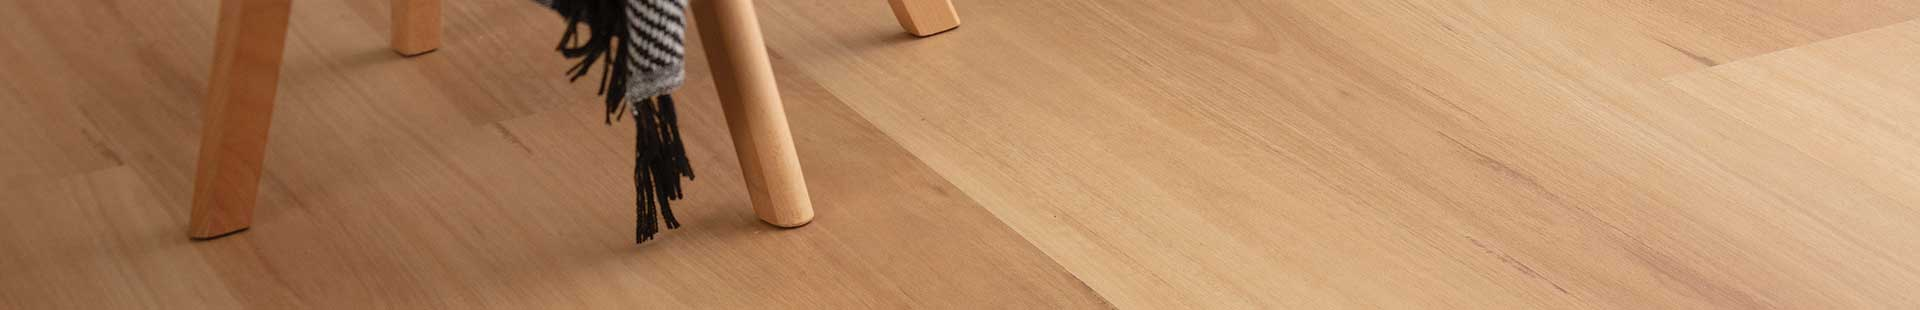 Terra Mater Floors Resiplank Corsica Oak Collection